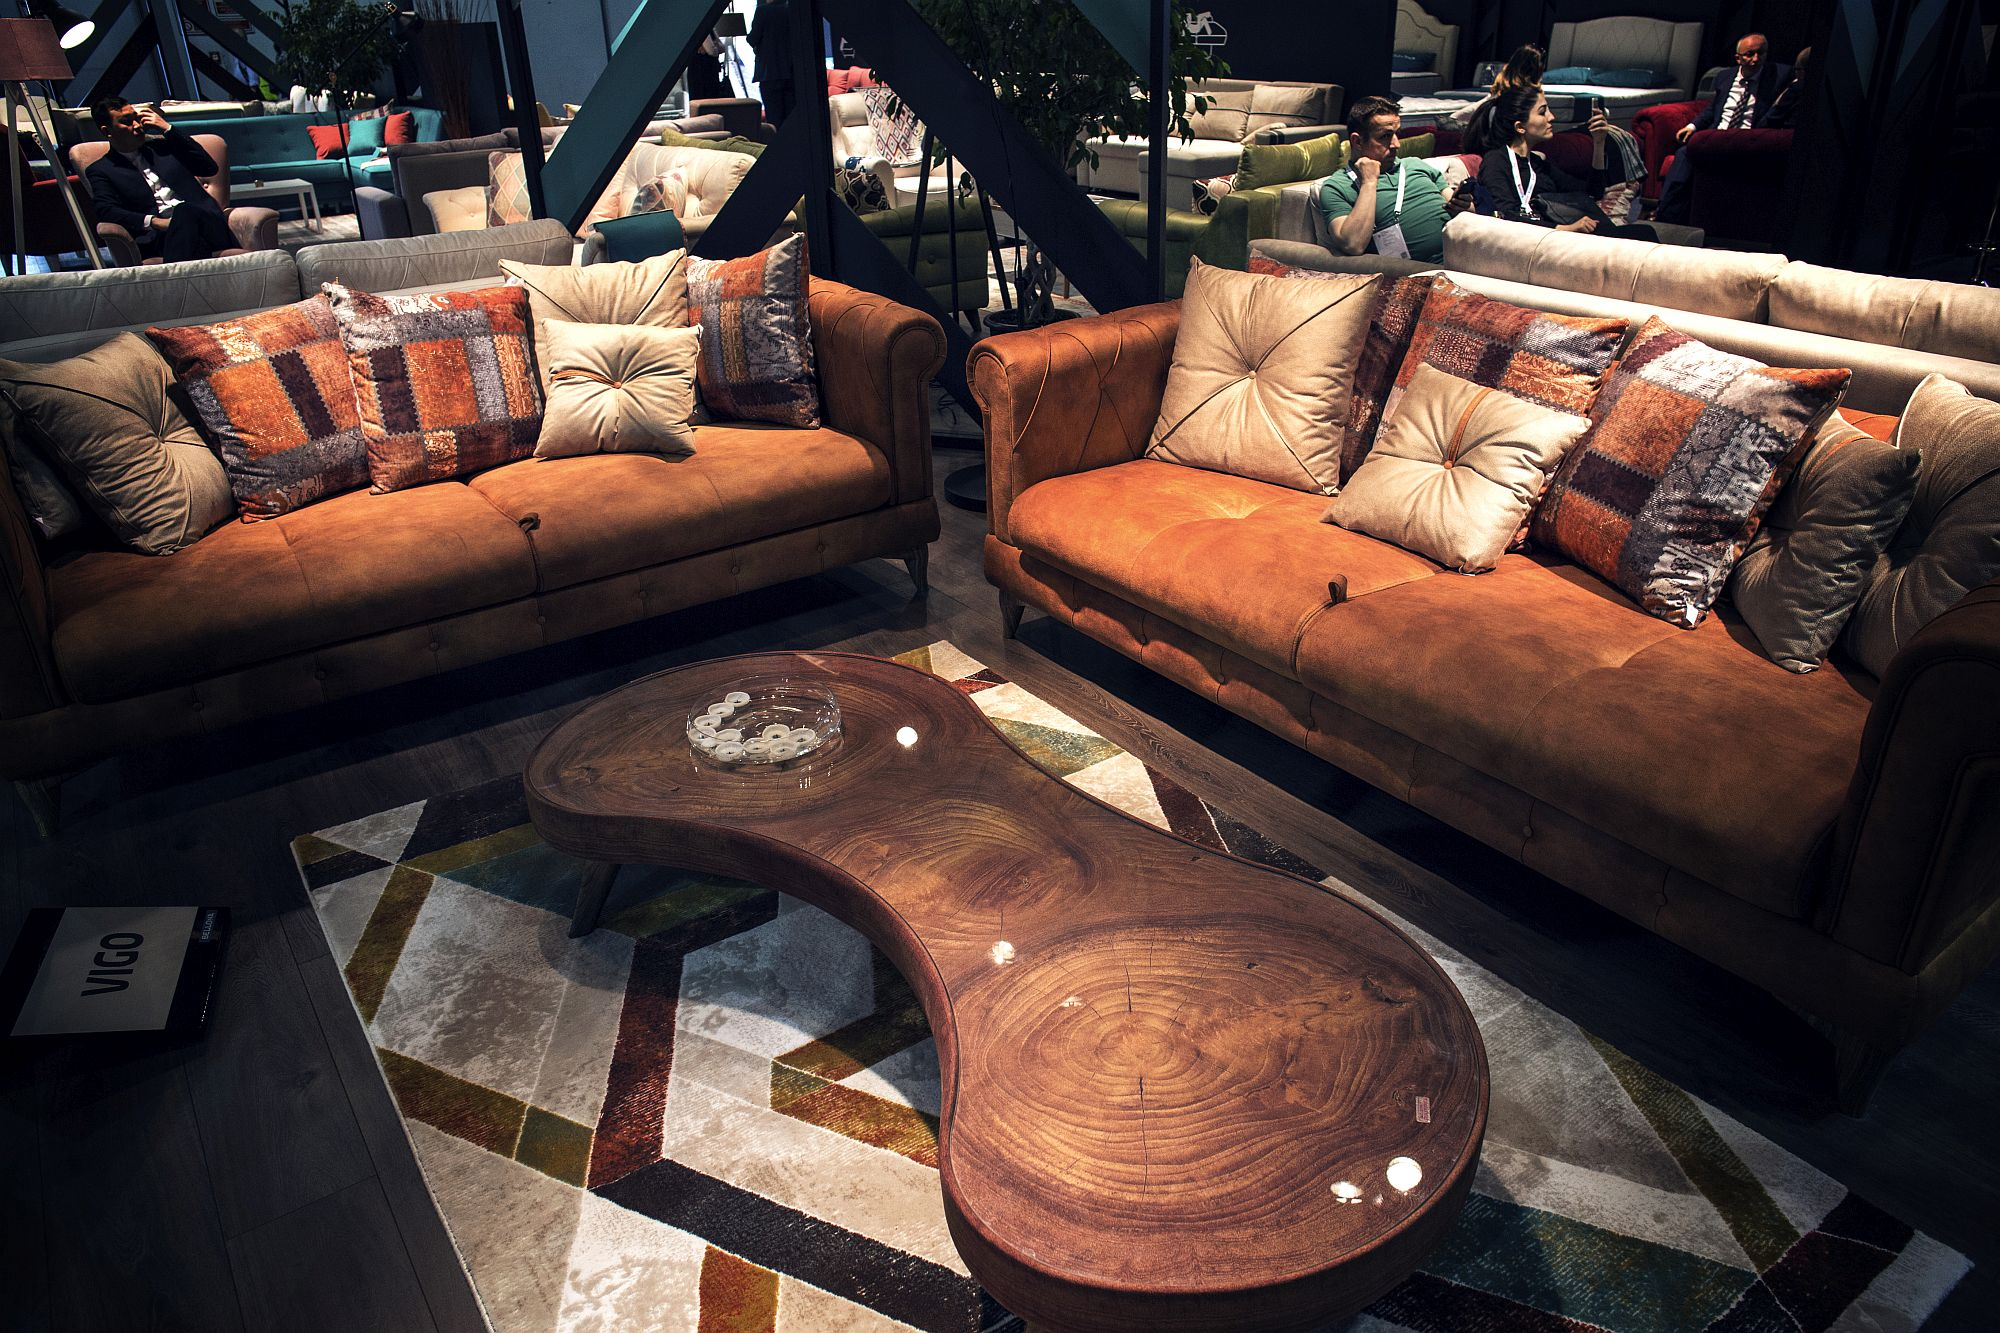 Unique wooden coffee table and leather sofas with jaded finish are perfect for the industrial style interior